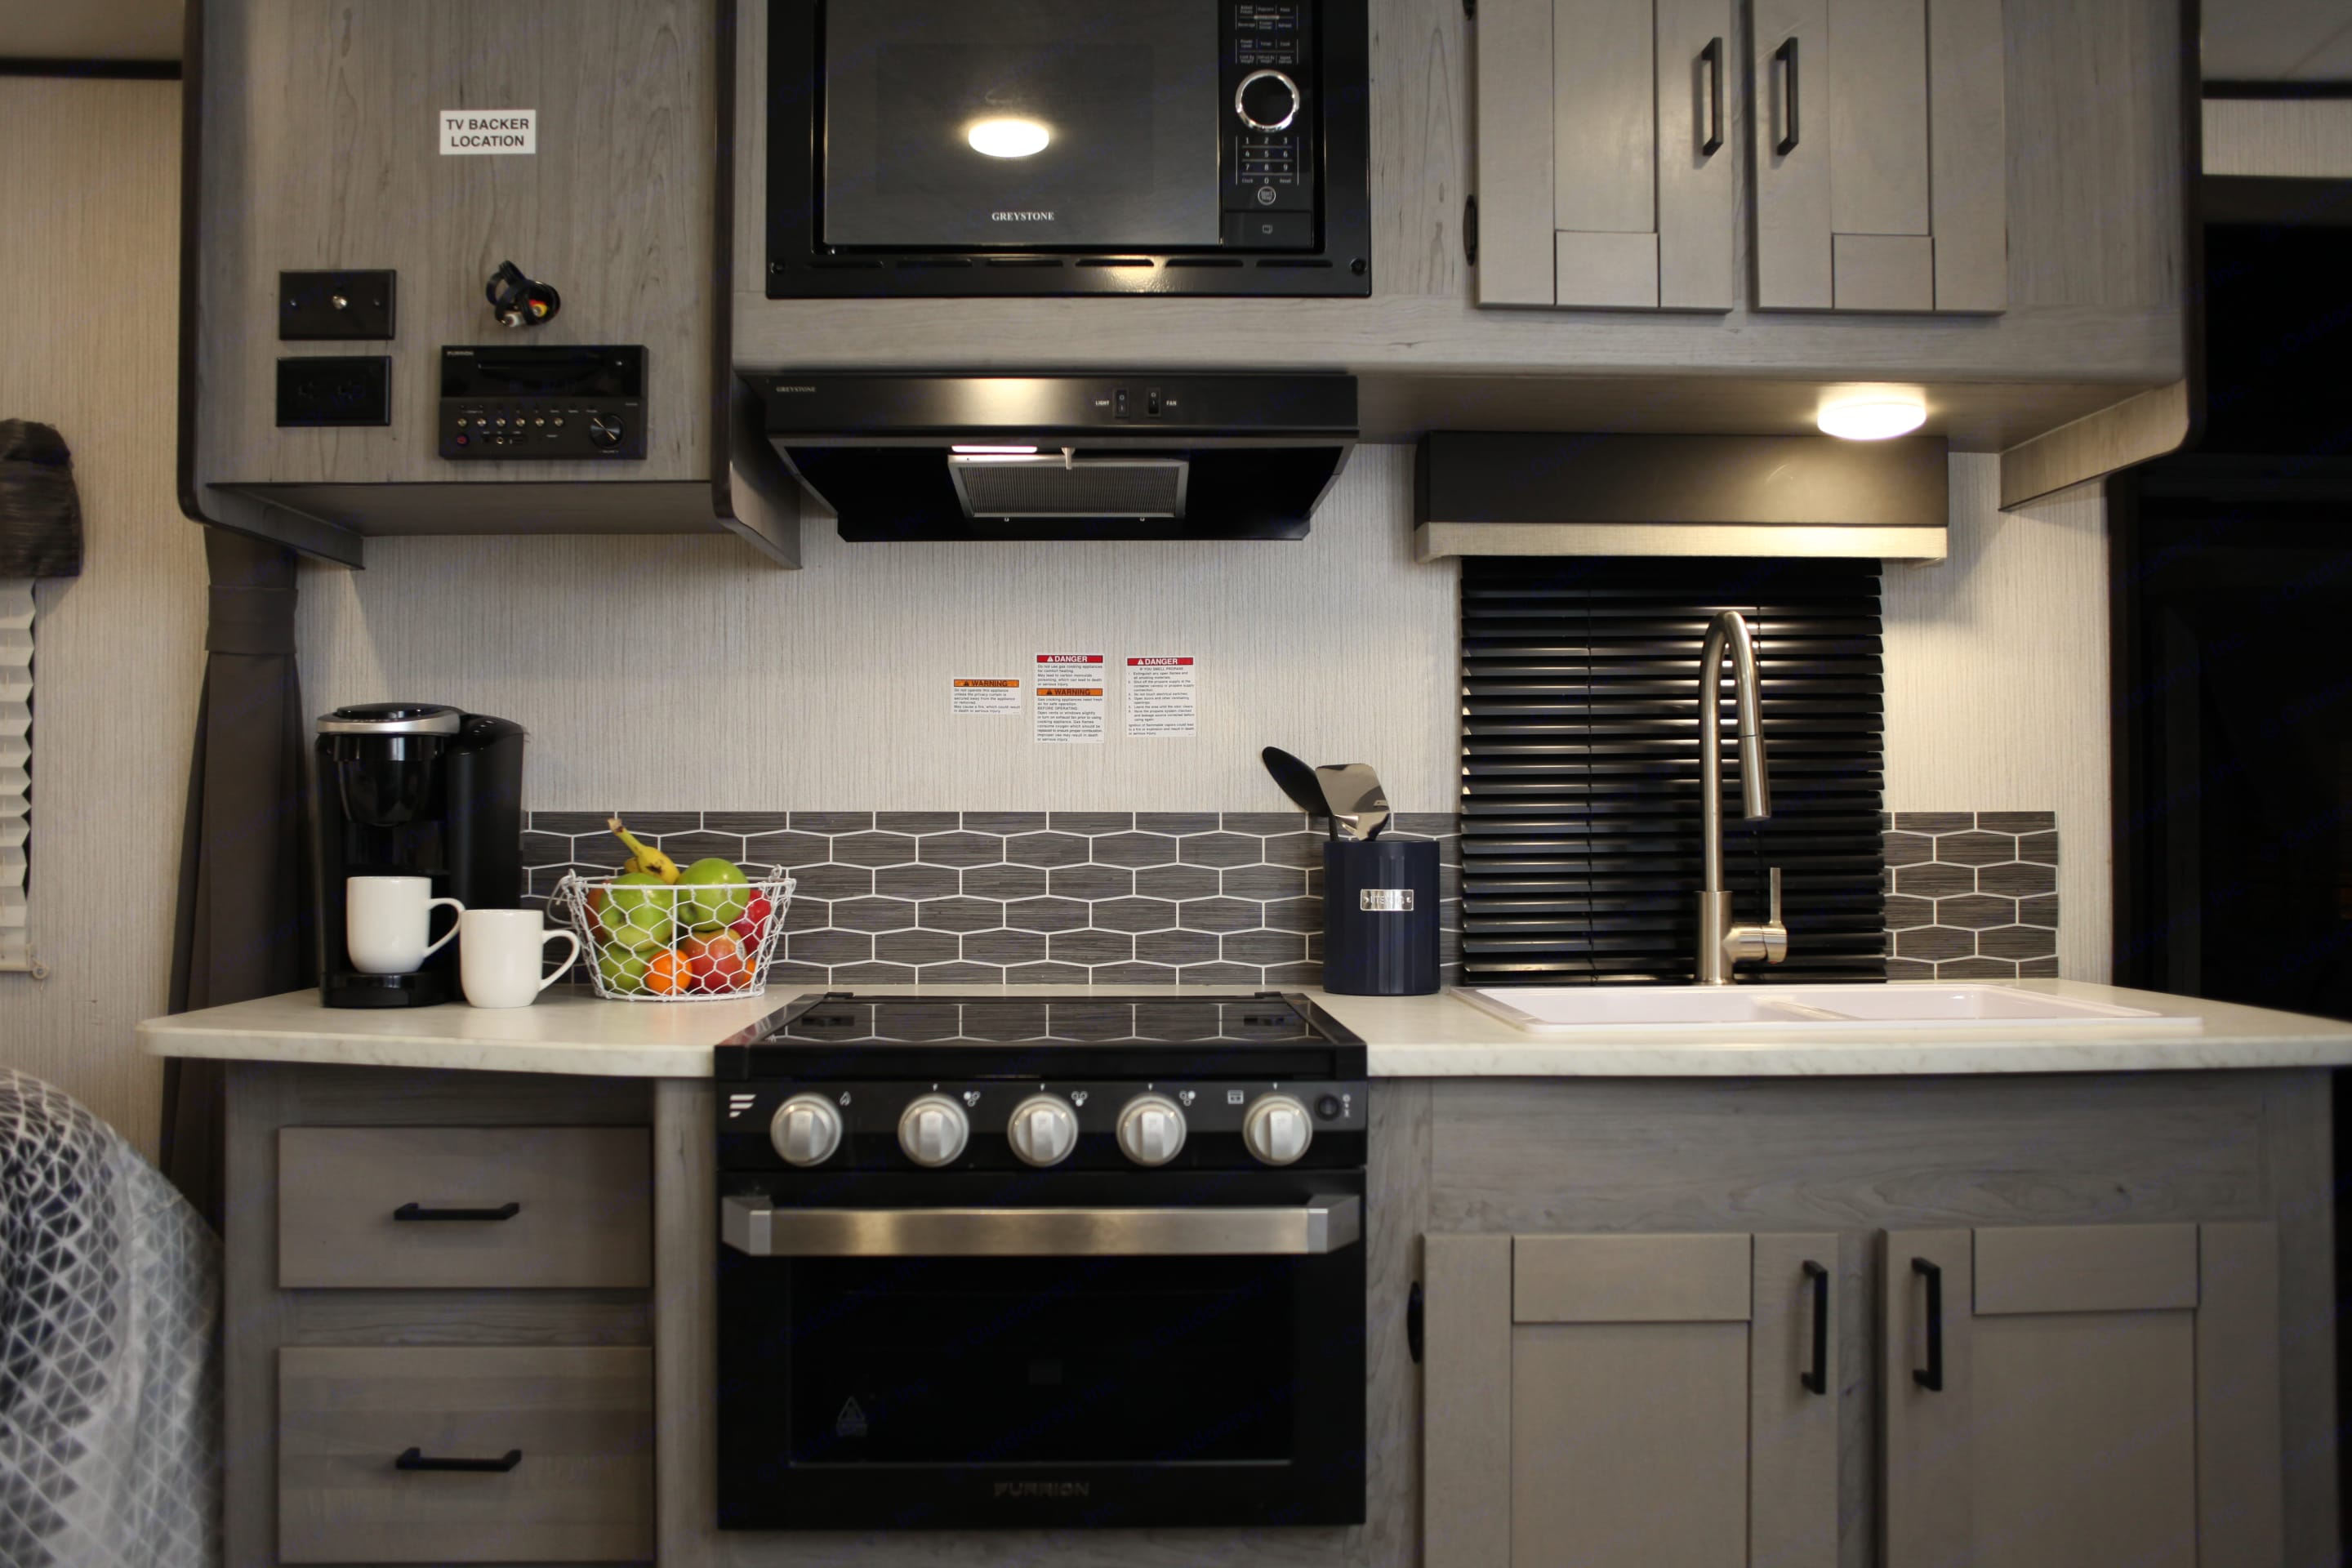 Microwave, oven , 3 burner stove. Rental includes a keurig machine (bring pods and creamer) 1 pot and 1 pan and some utensils included. Heartland Mallard 2020